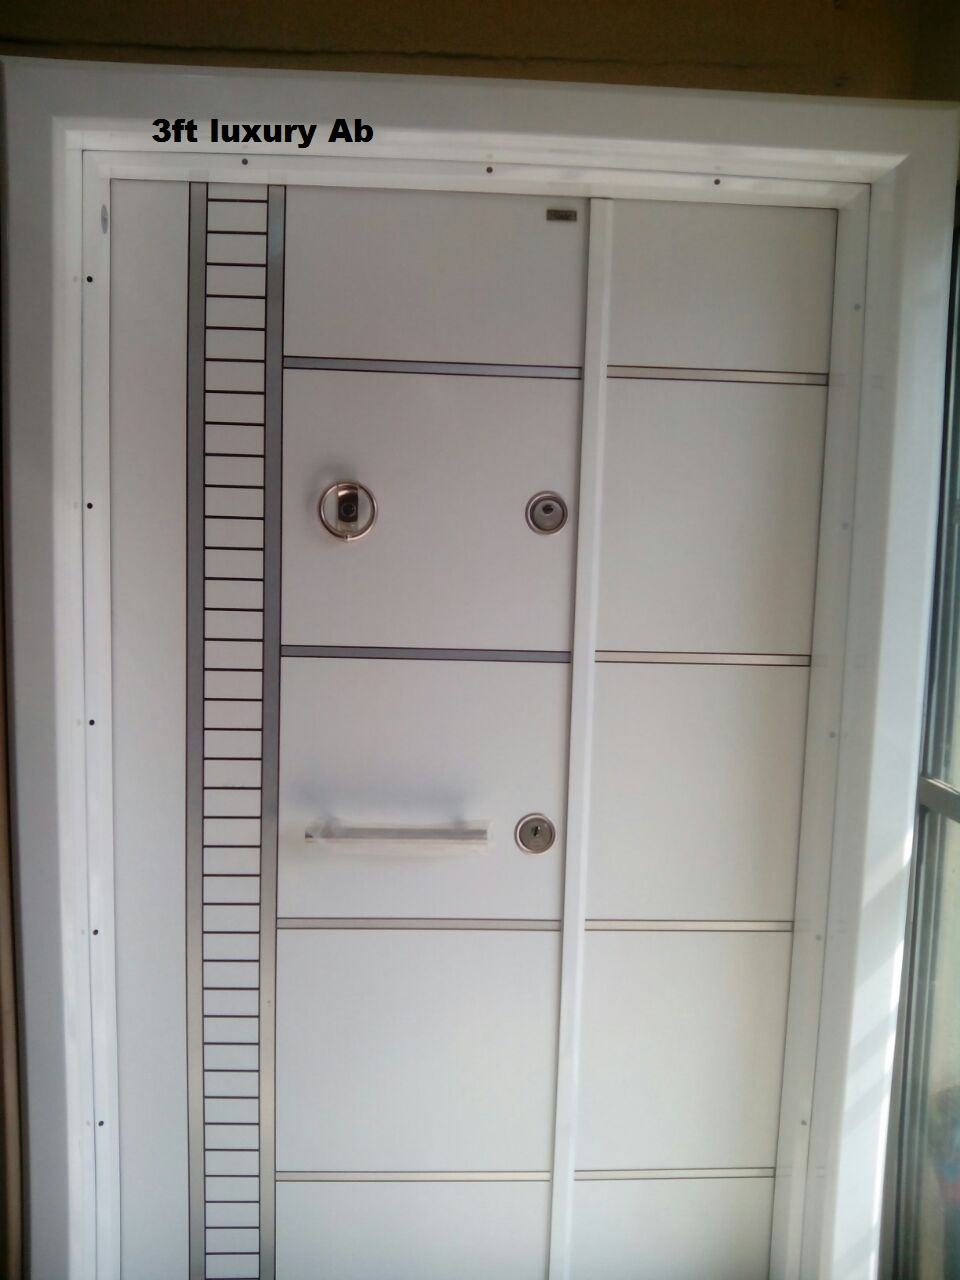 Home Of Imported Luxury Doors In Lagos Nigeria - Adverts - Nairaland : imported doors - Pezcame.Com